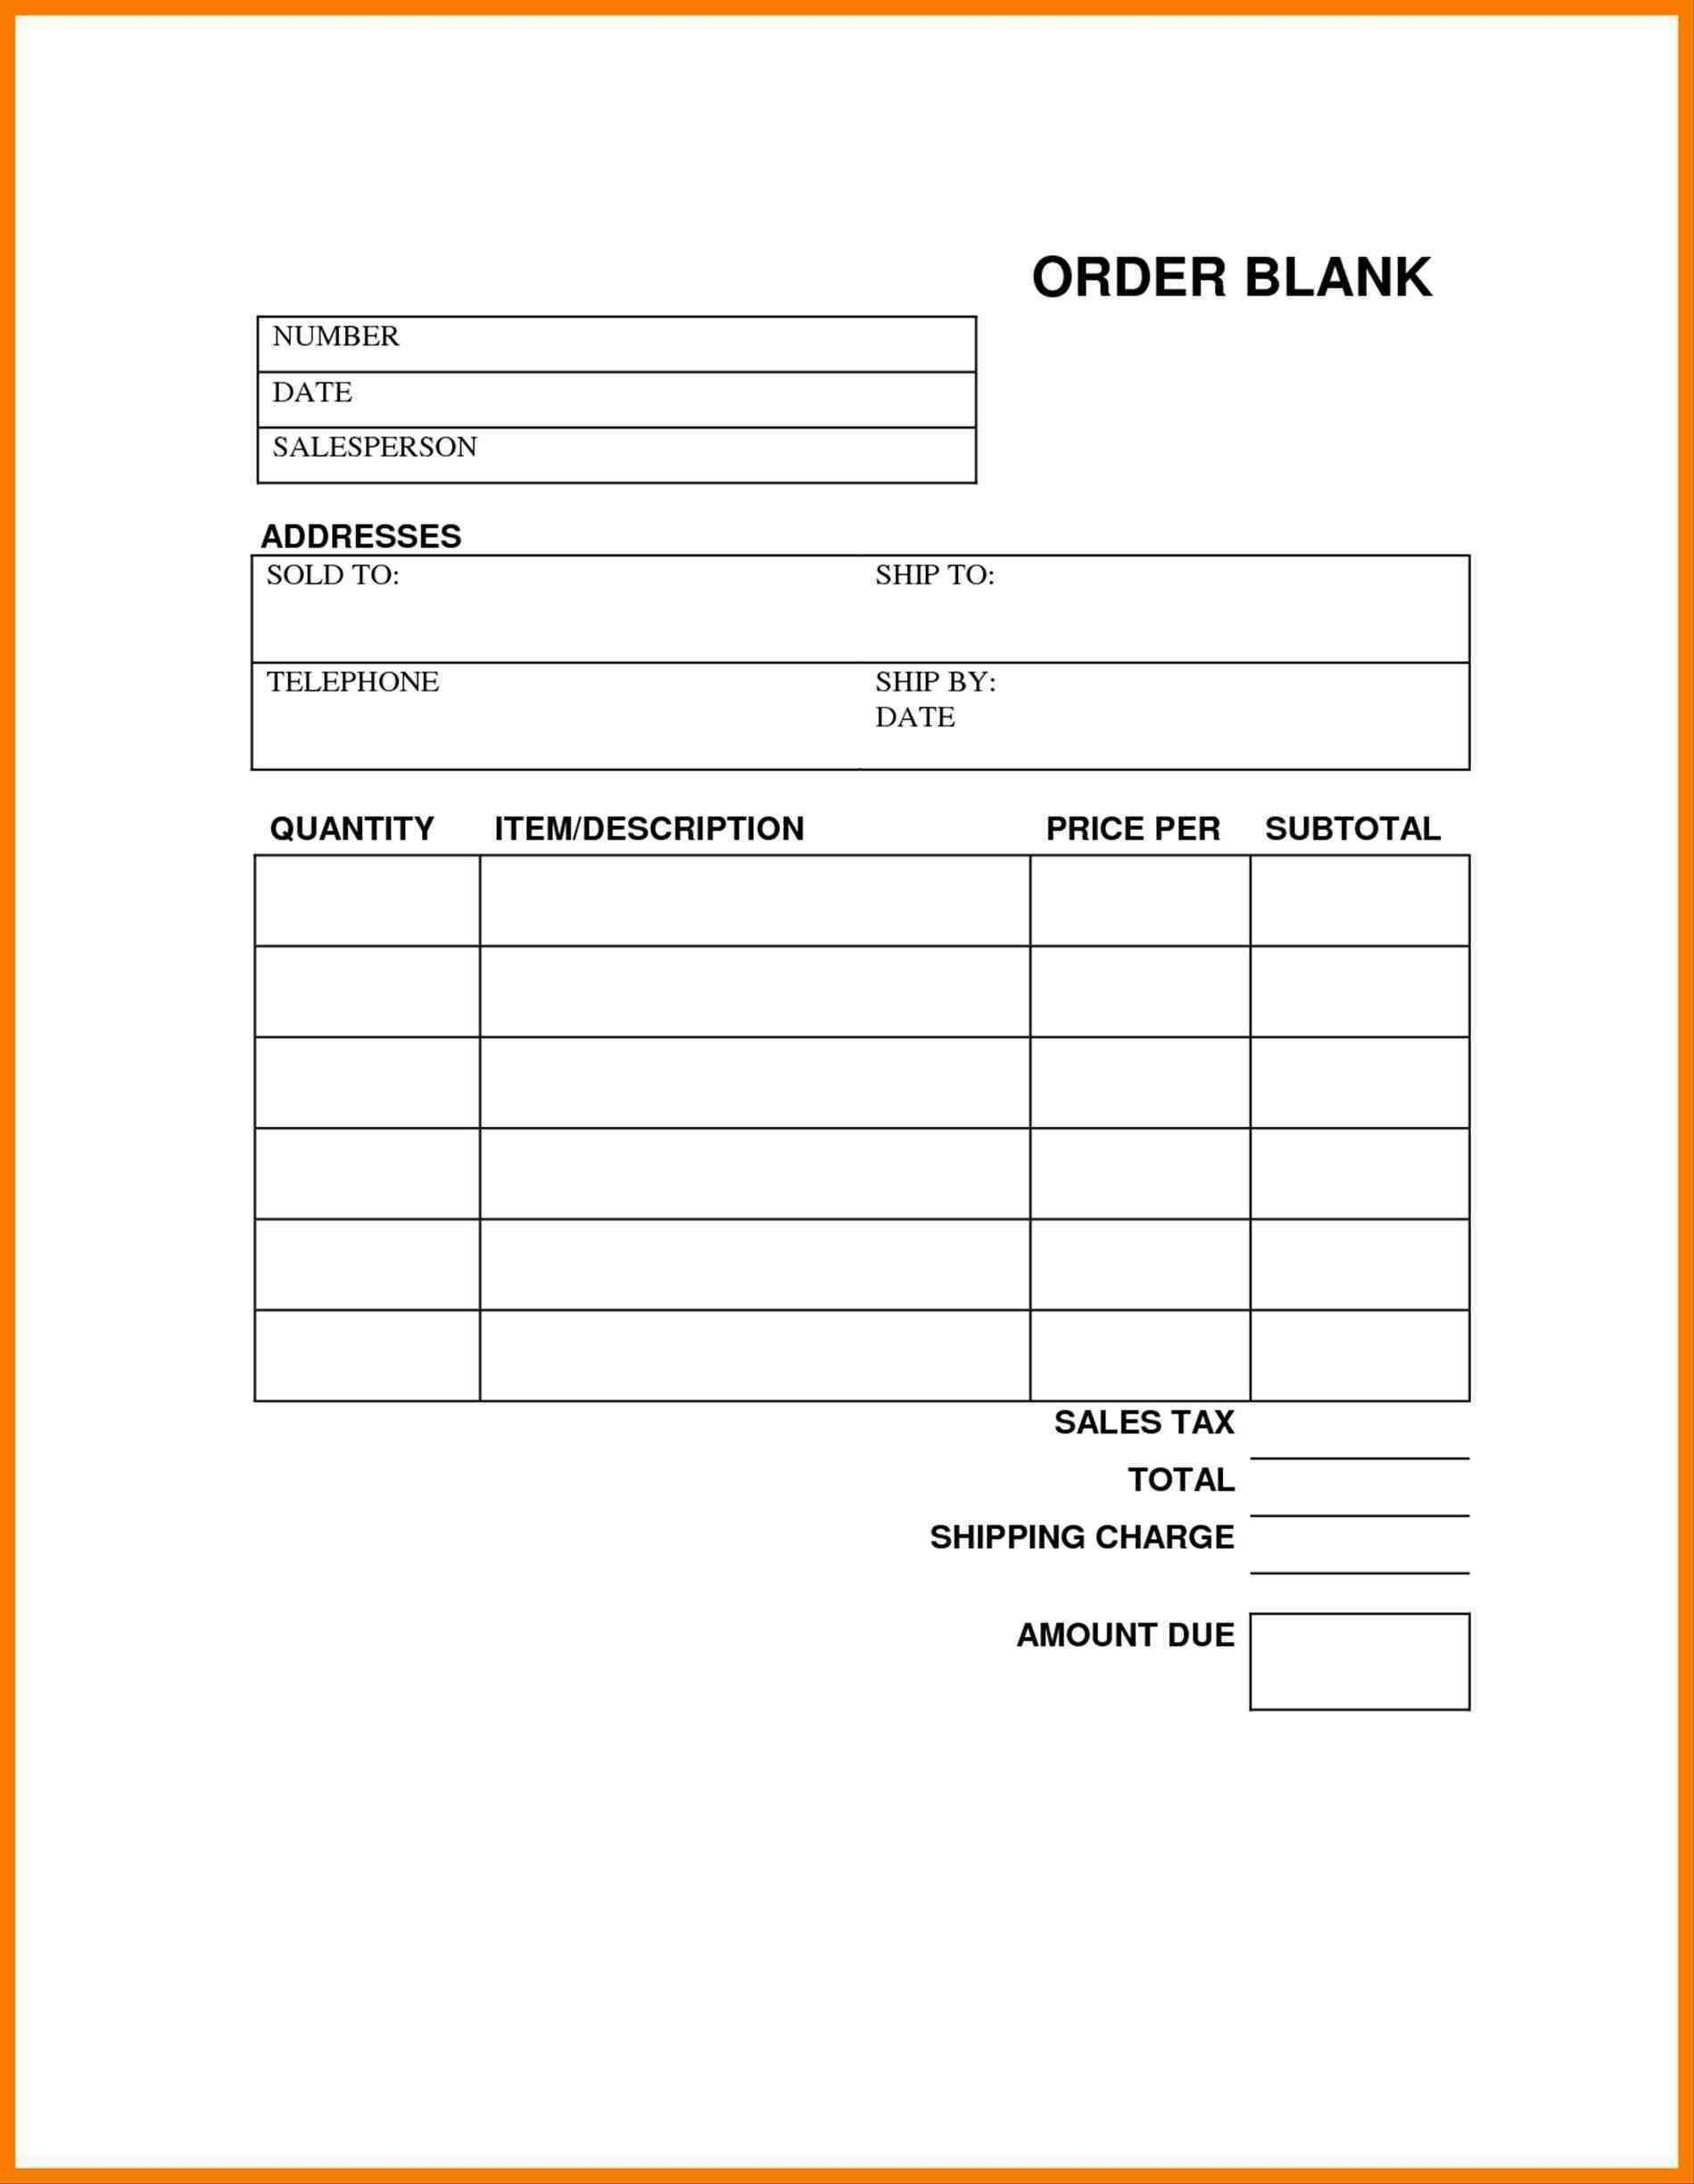 Blank Order Forms Templates Free | Free Tamplate | Pinterest | Order - Free Printable Order Forms